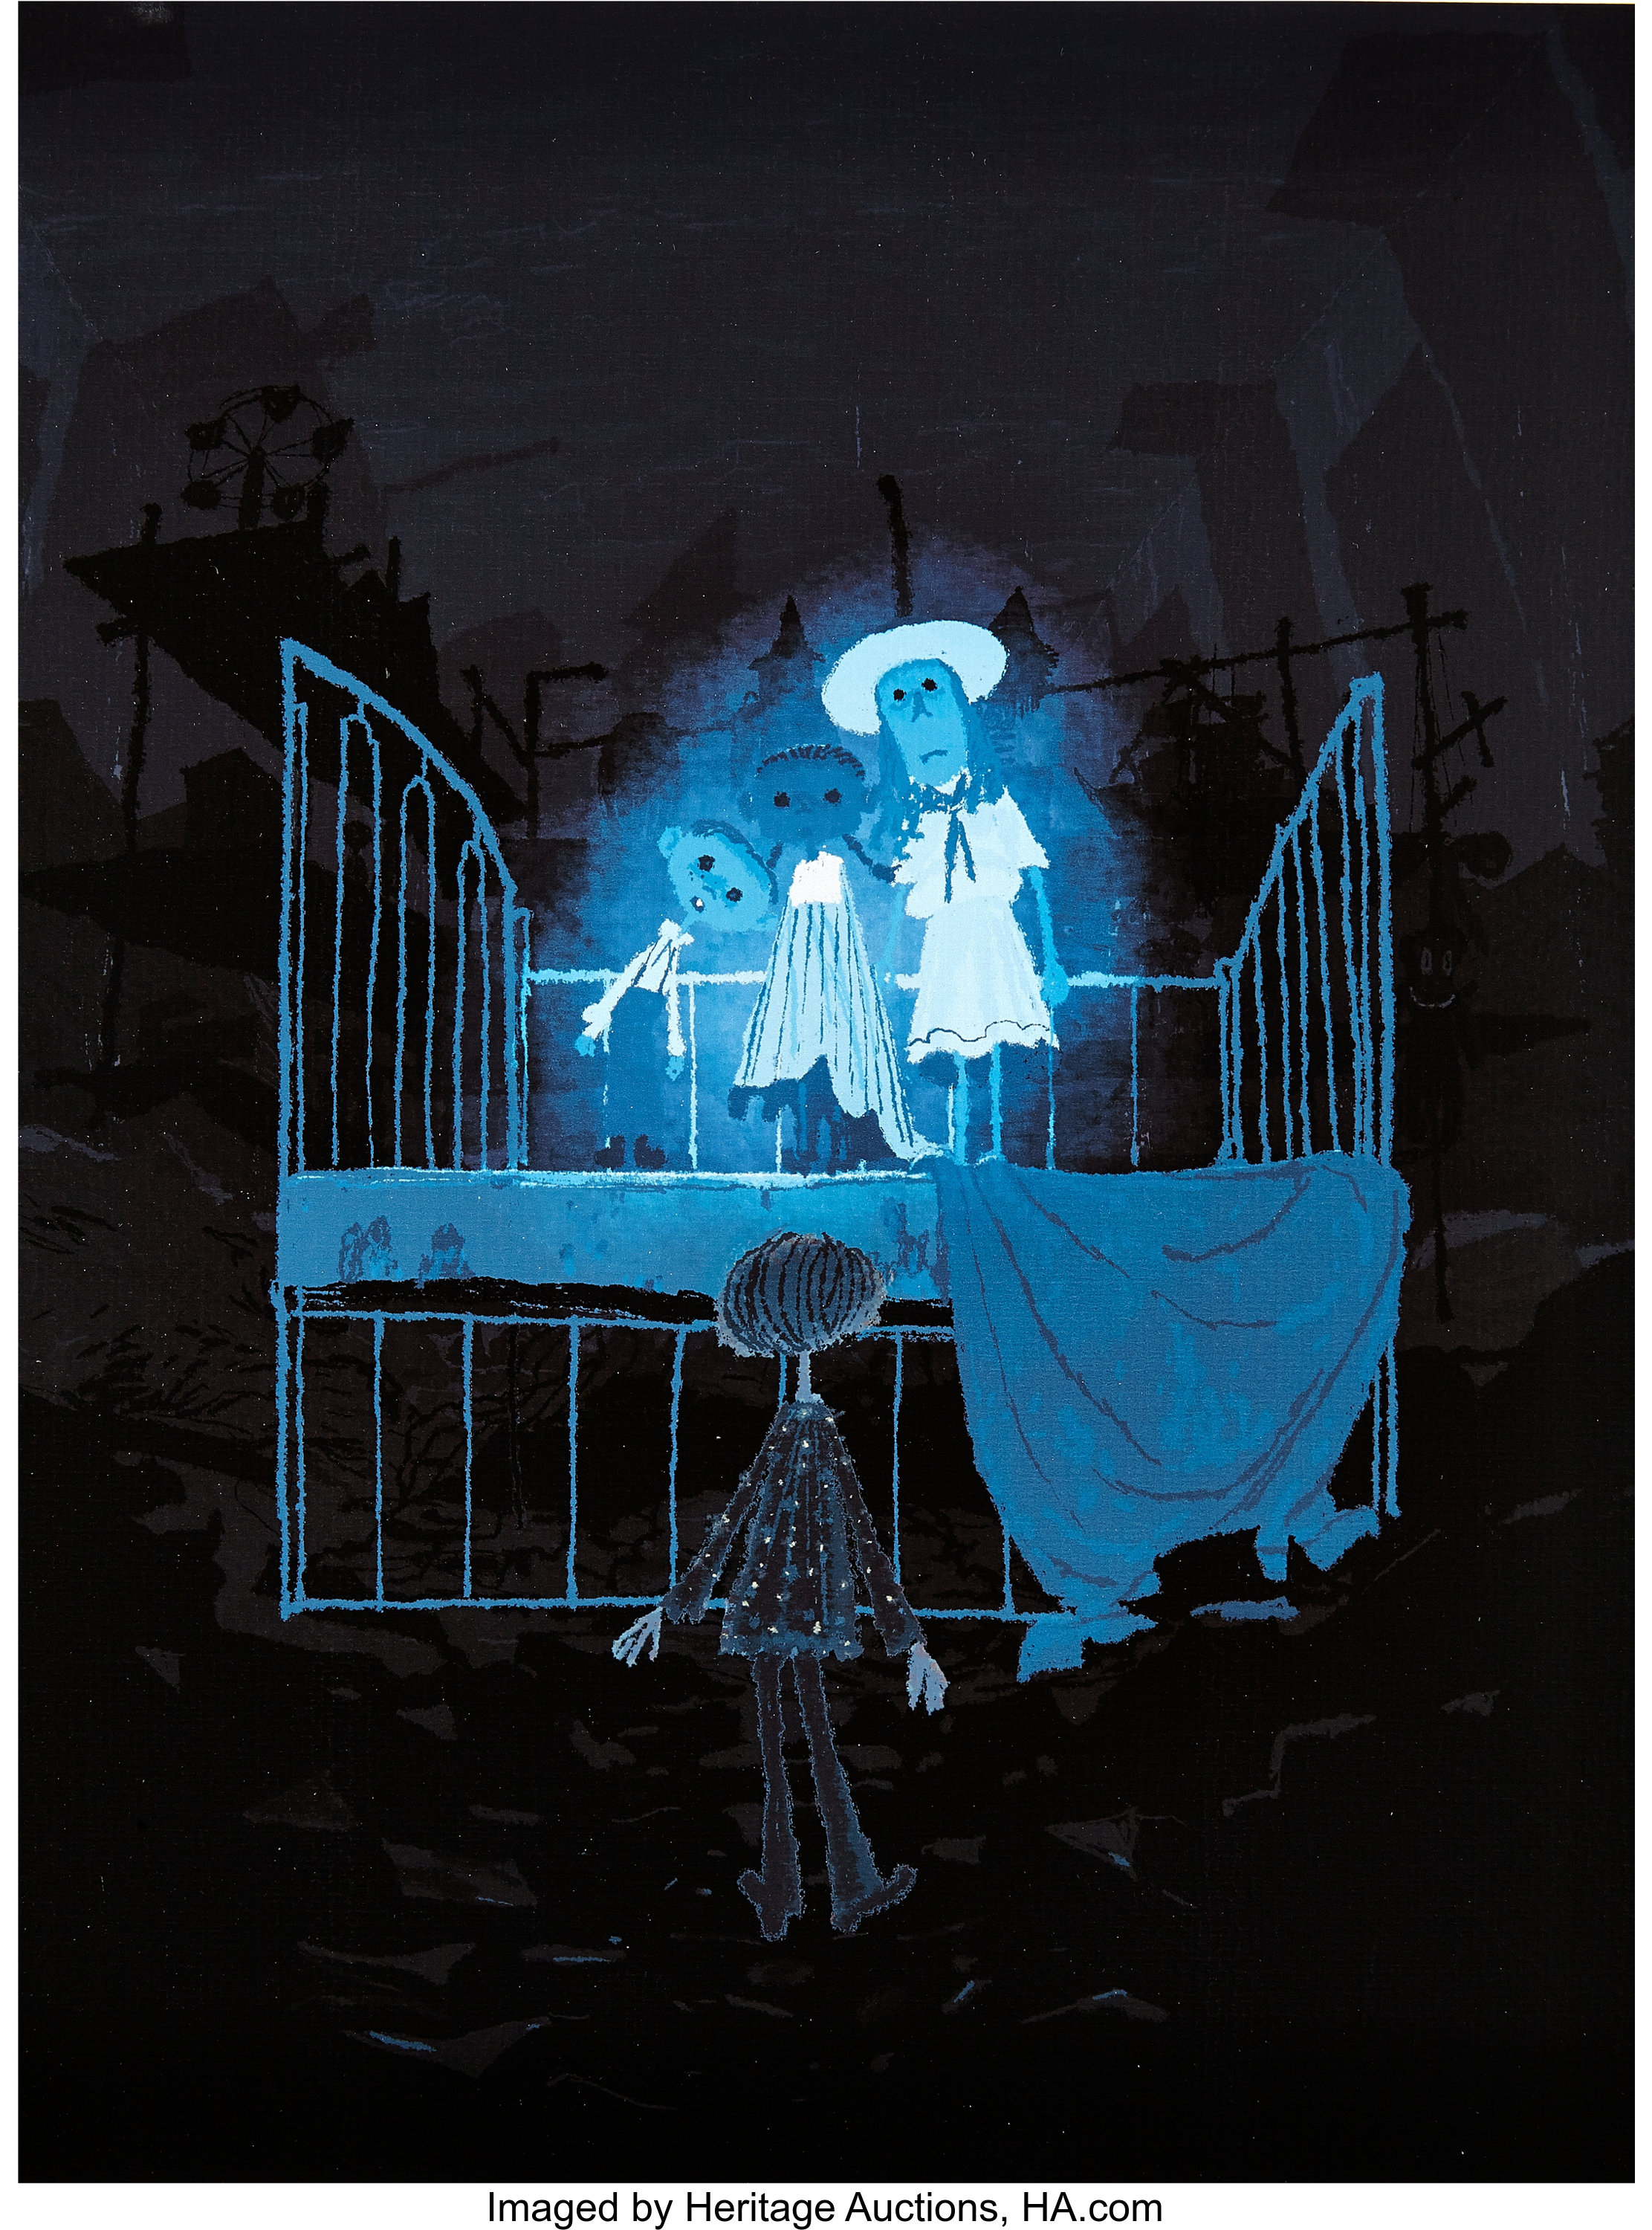 Coraline Coraline And The Ghost Children Studio Lithograph By Lot 94080 Heritage Auctions